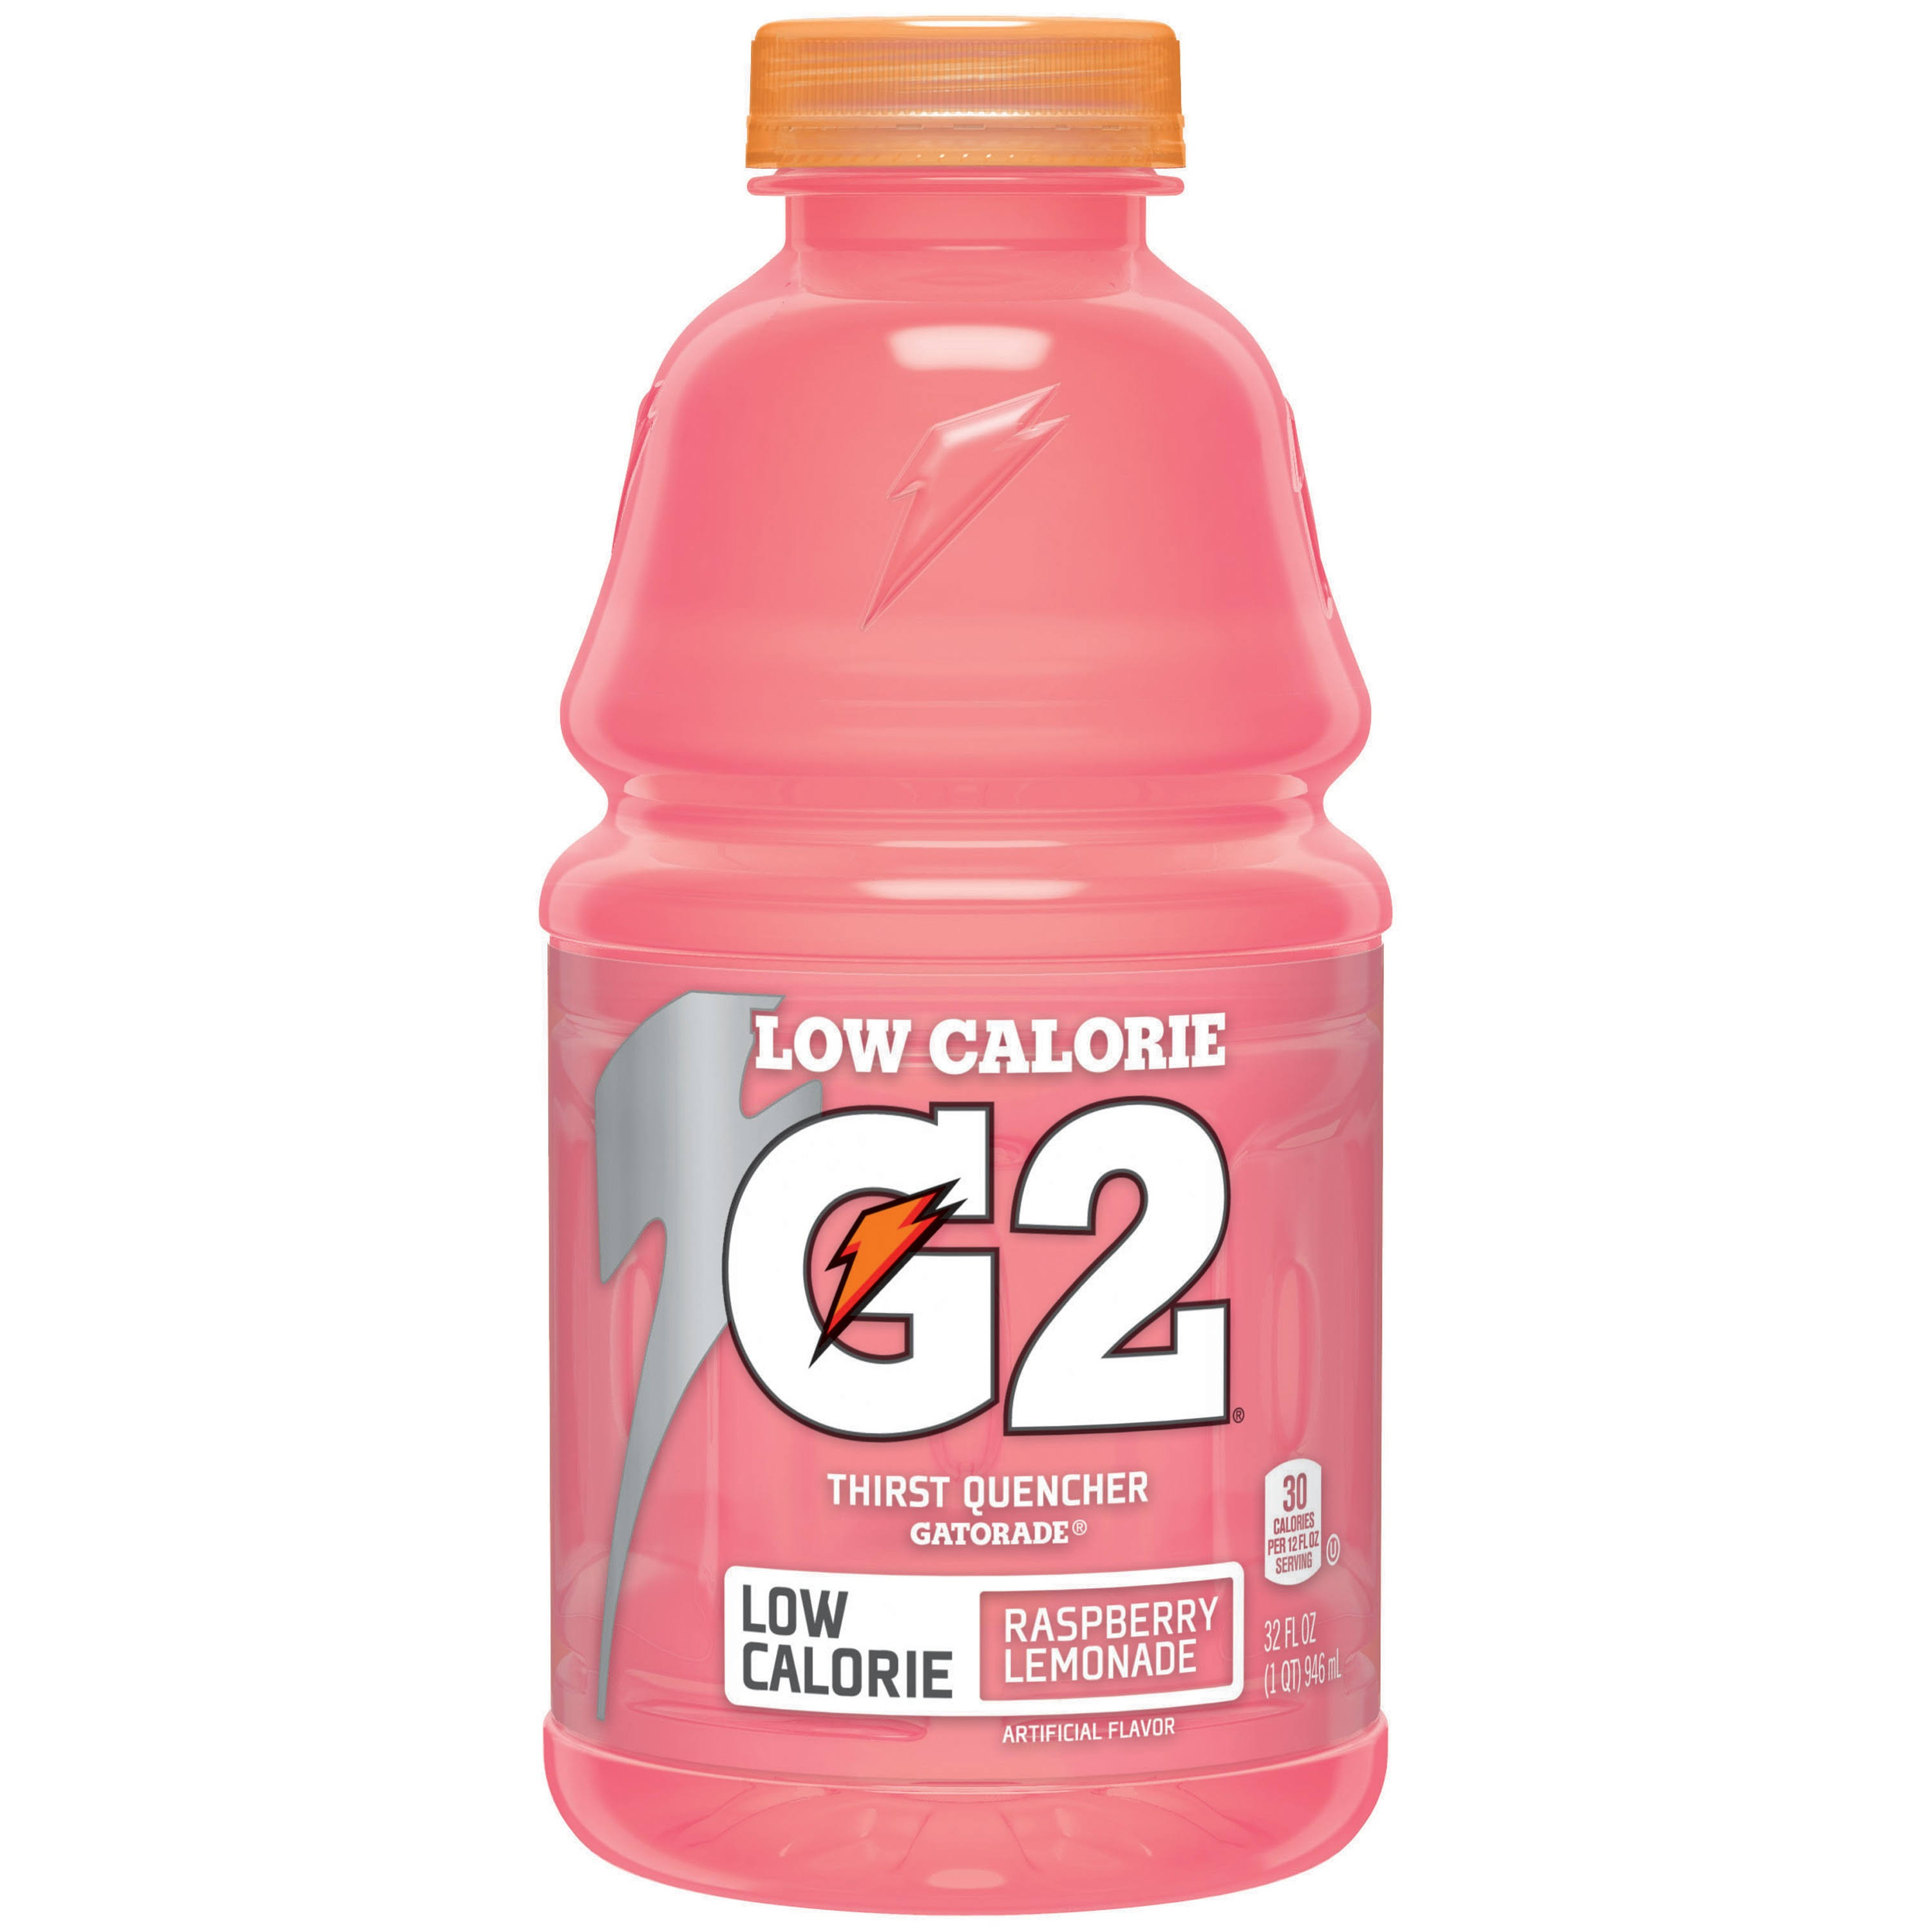 Gatorade G Series Perform 02 Thirst Quencher Lemonade - Raspberry, 32oz